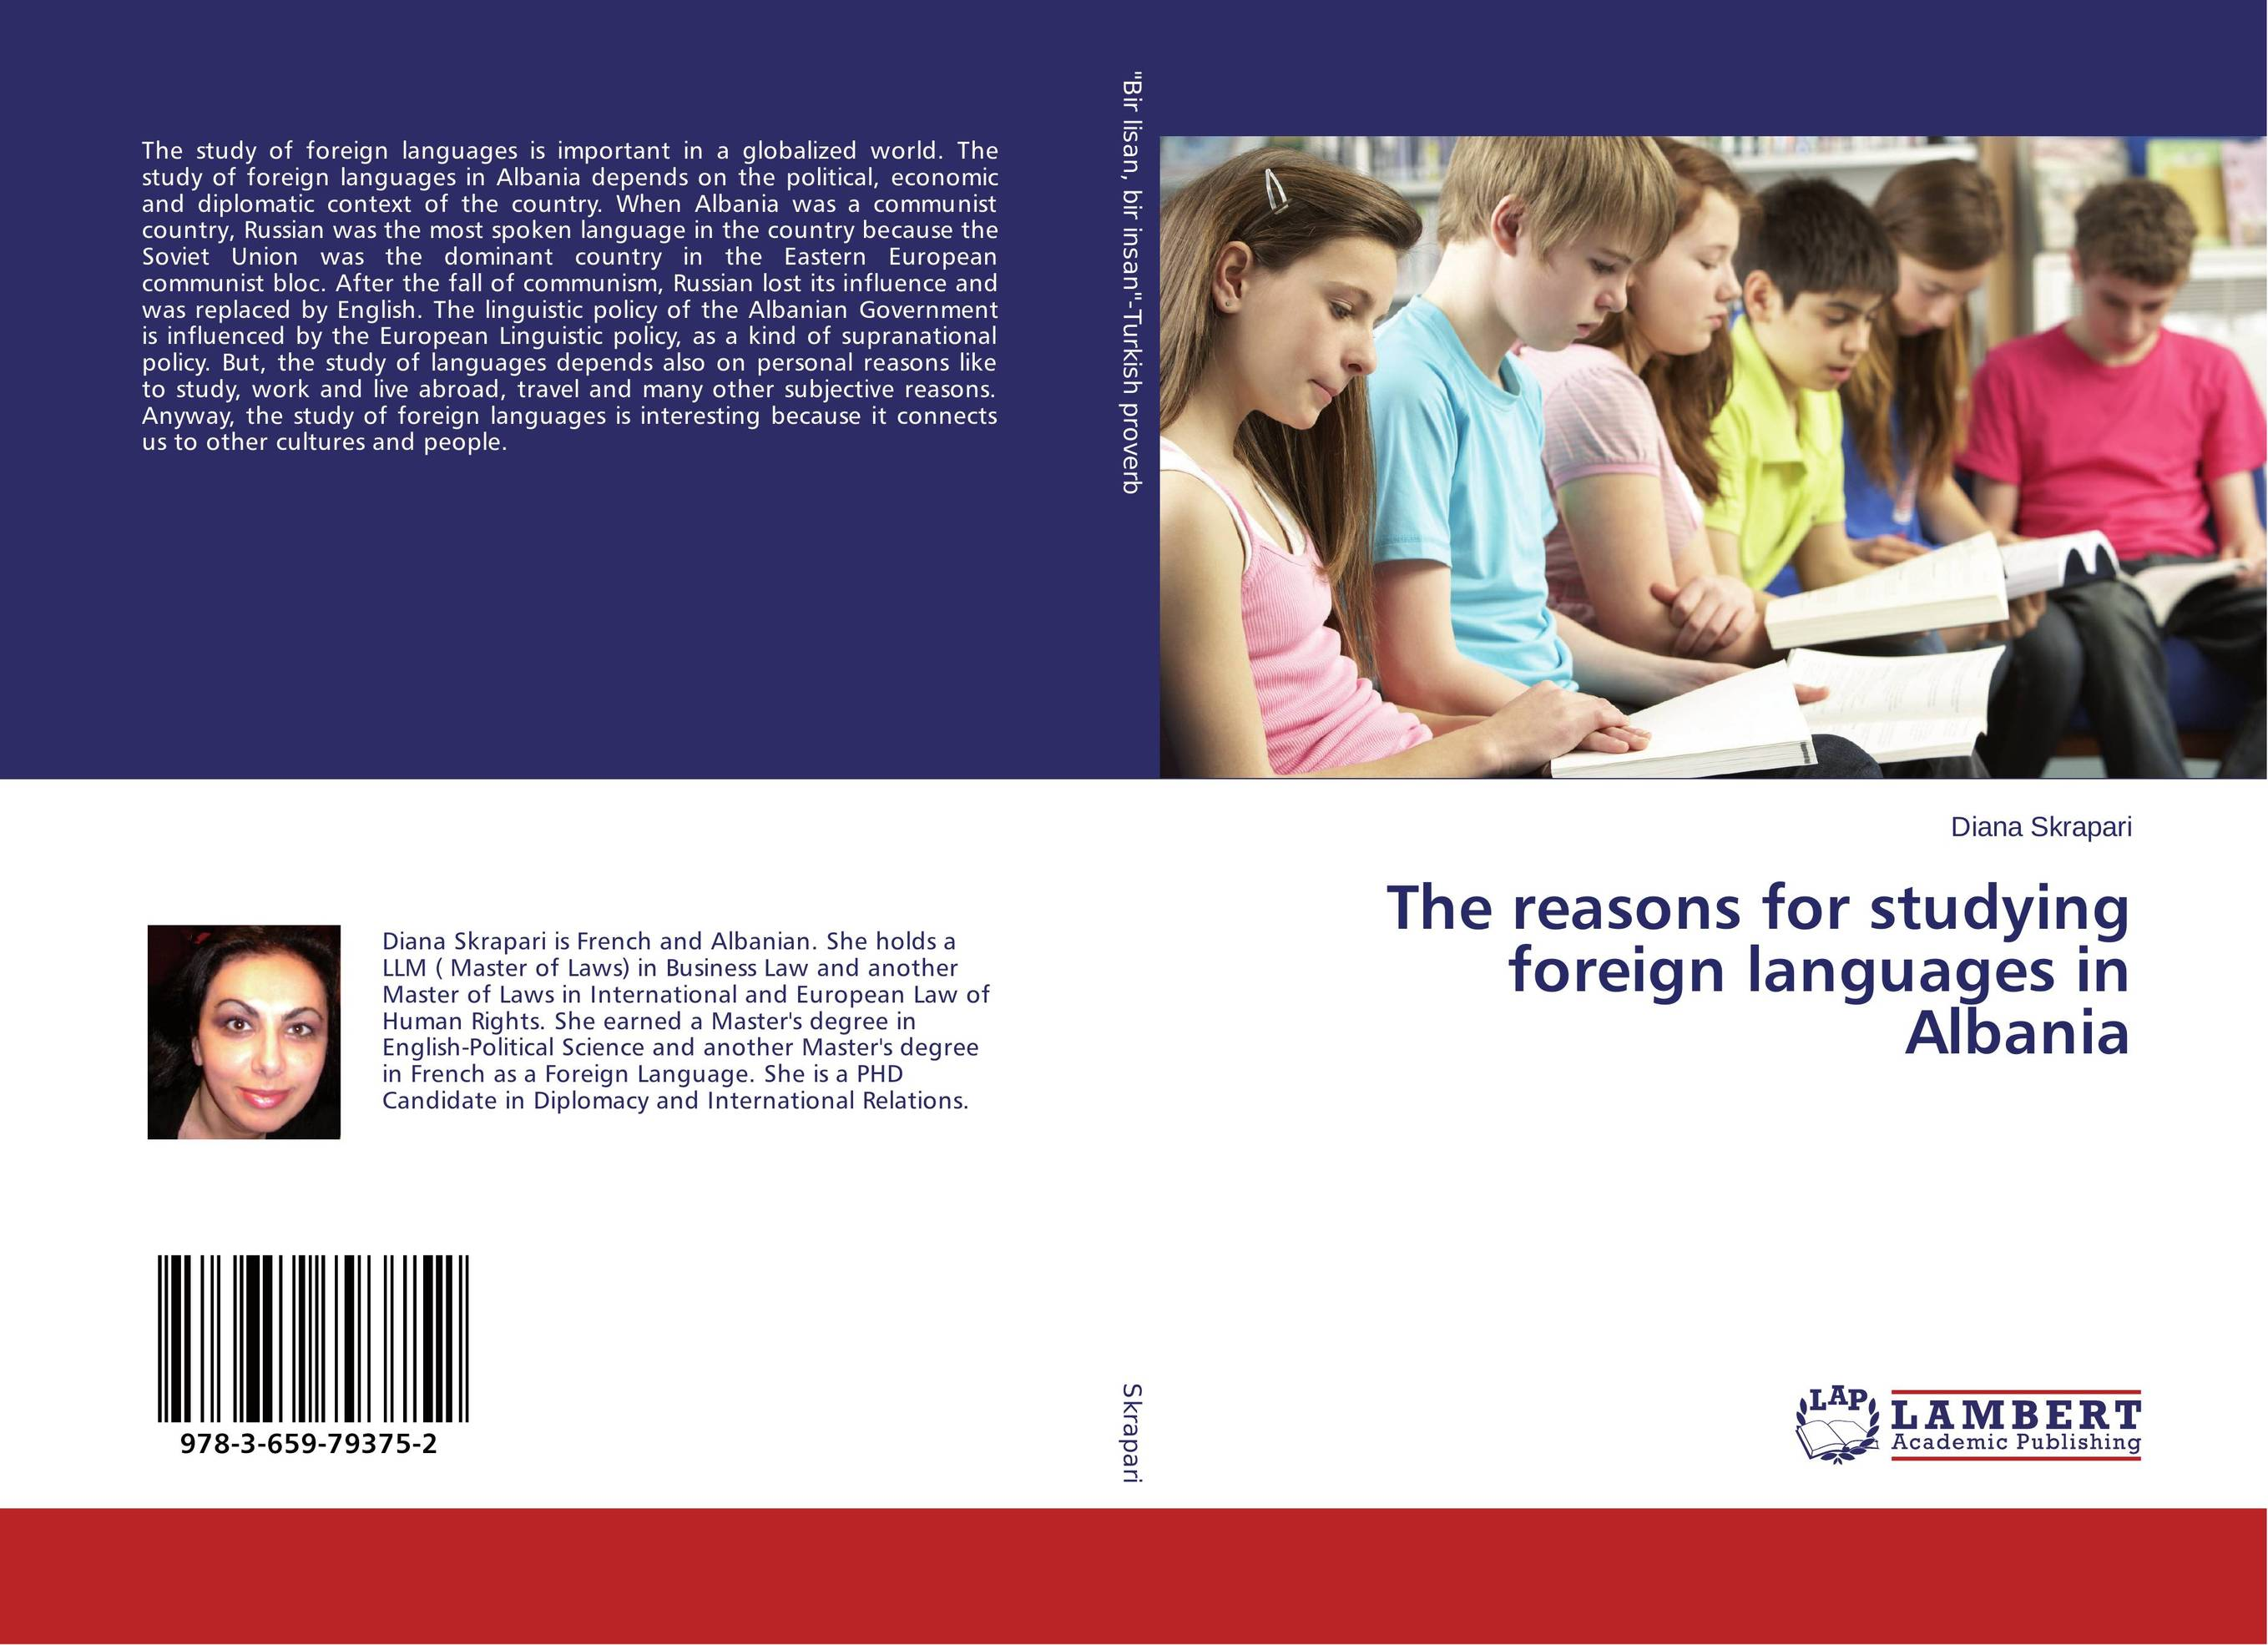 The reasons for studying foreign languages in Albania lindita mukli reformation of the health insurance system in albania